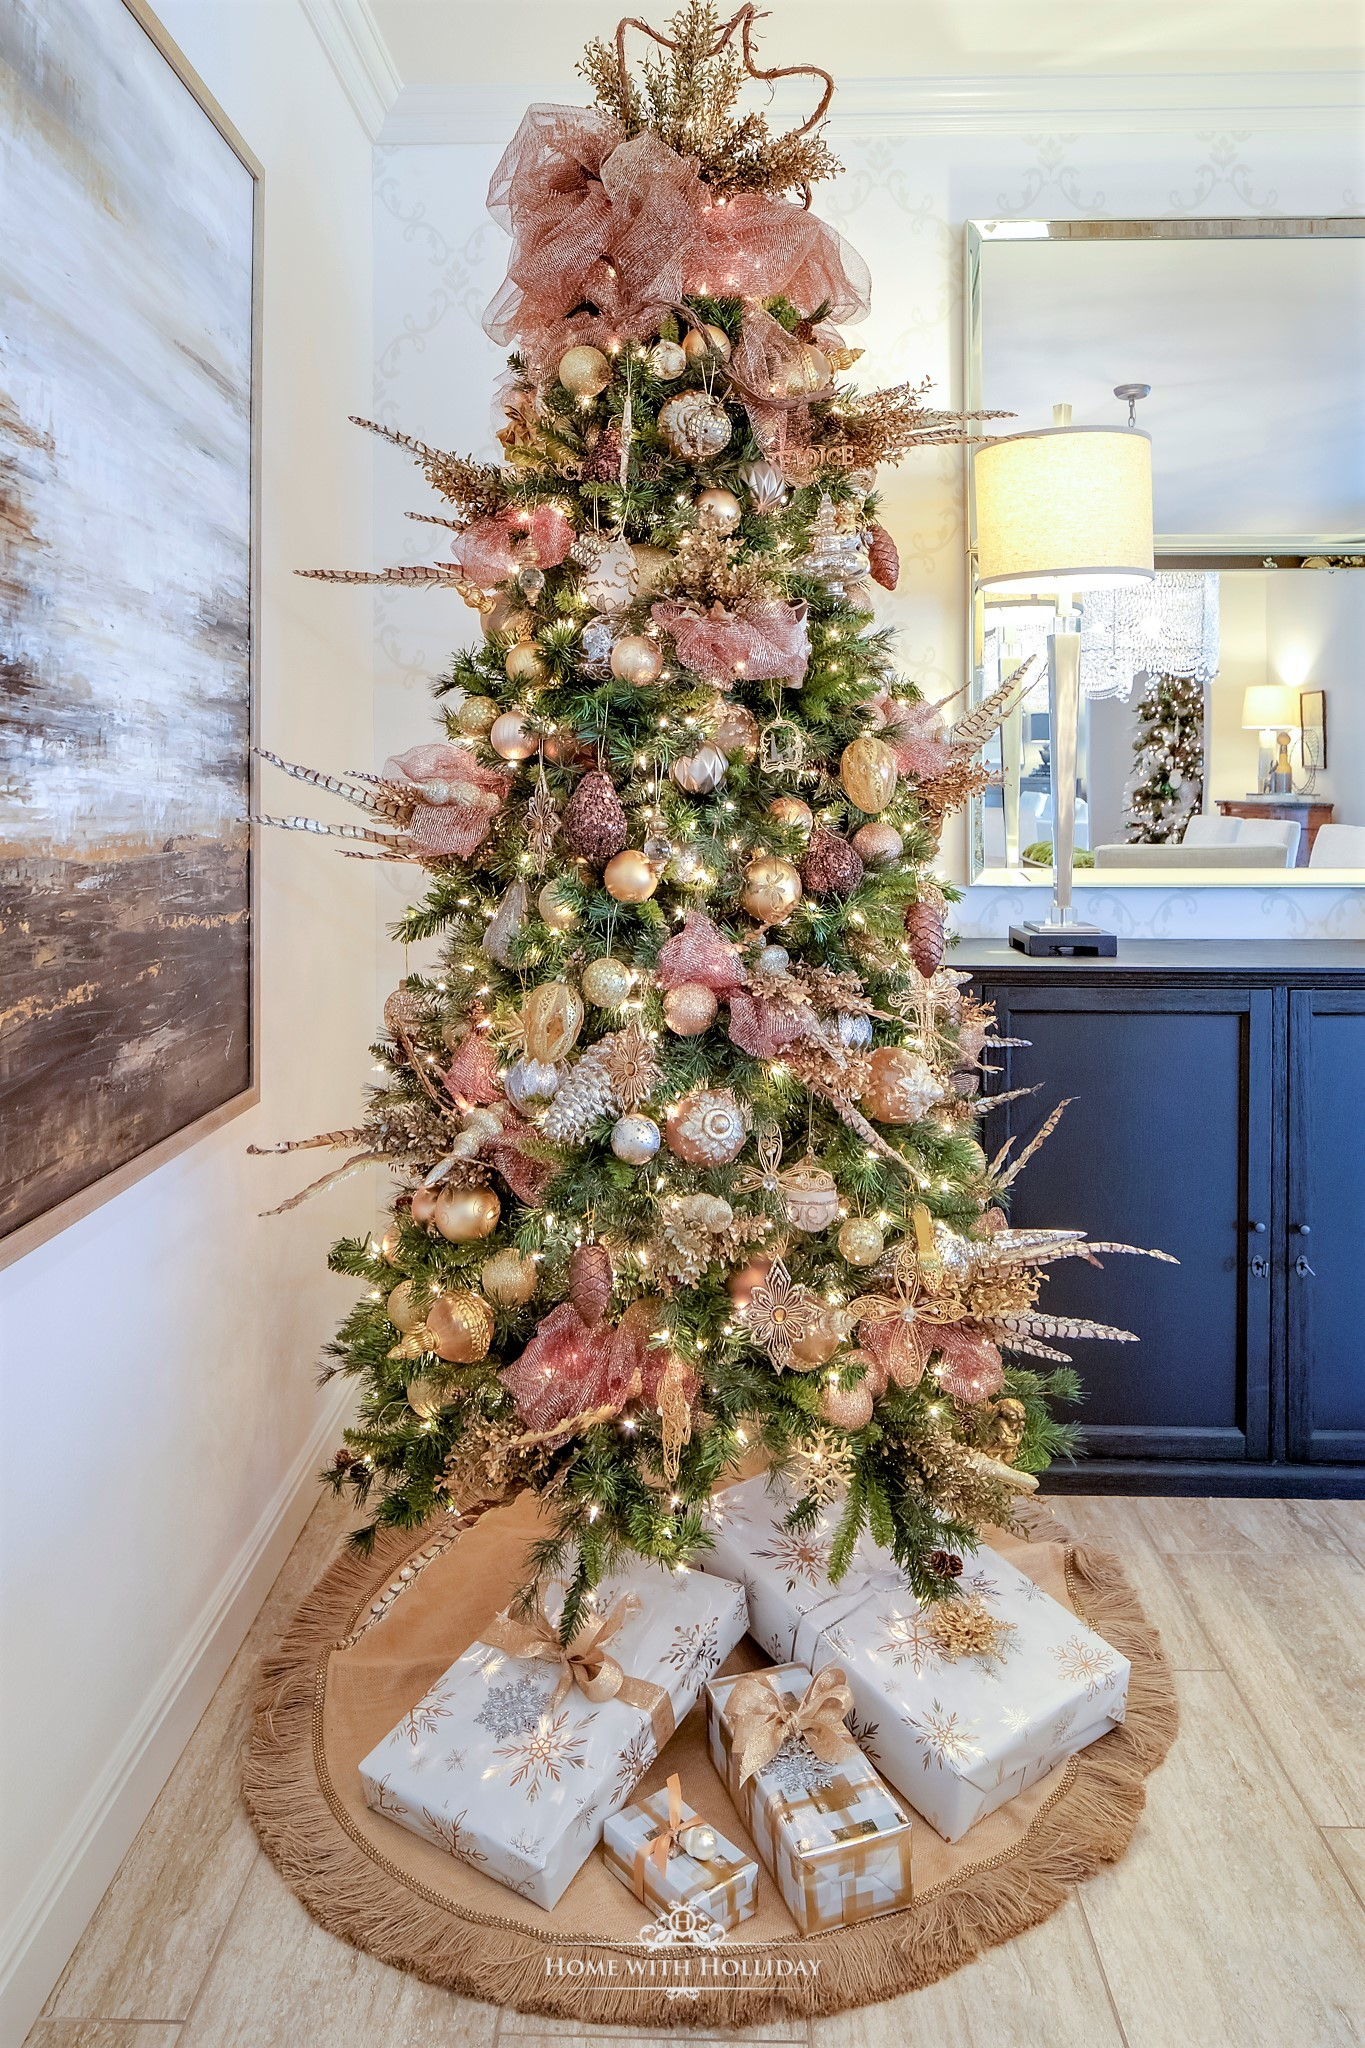 My Christmast Home Tour - Mixed Metallic Christmas Tree - Home with Holliday